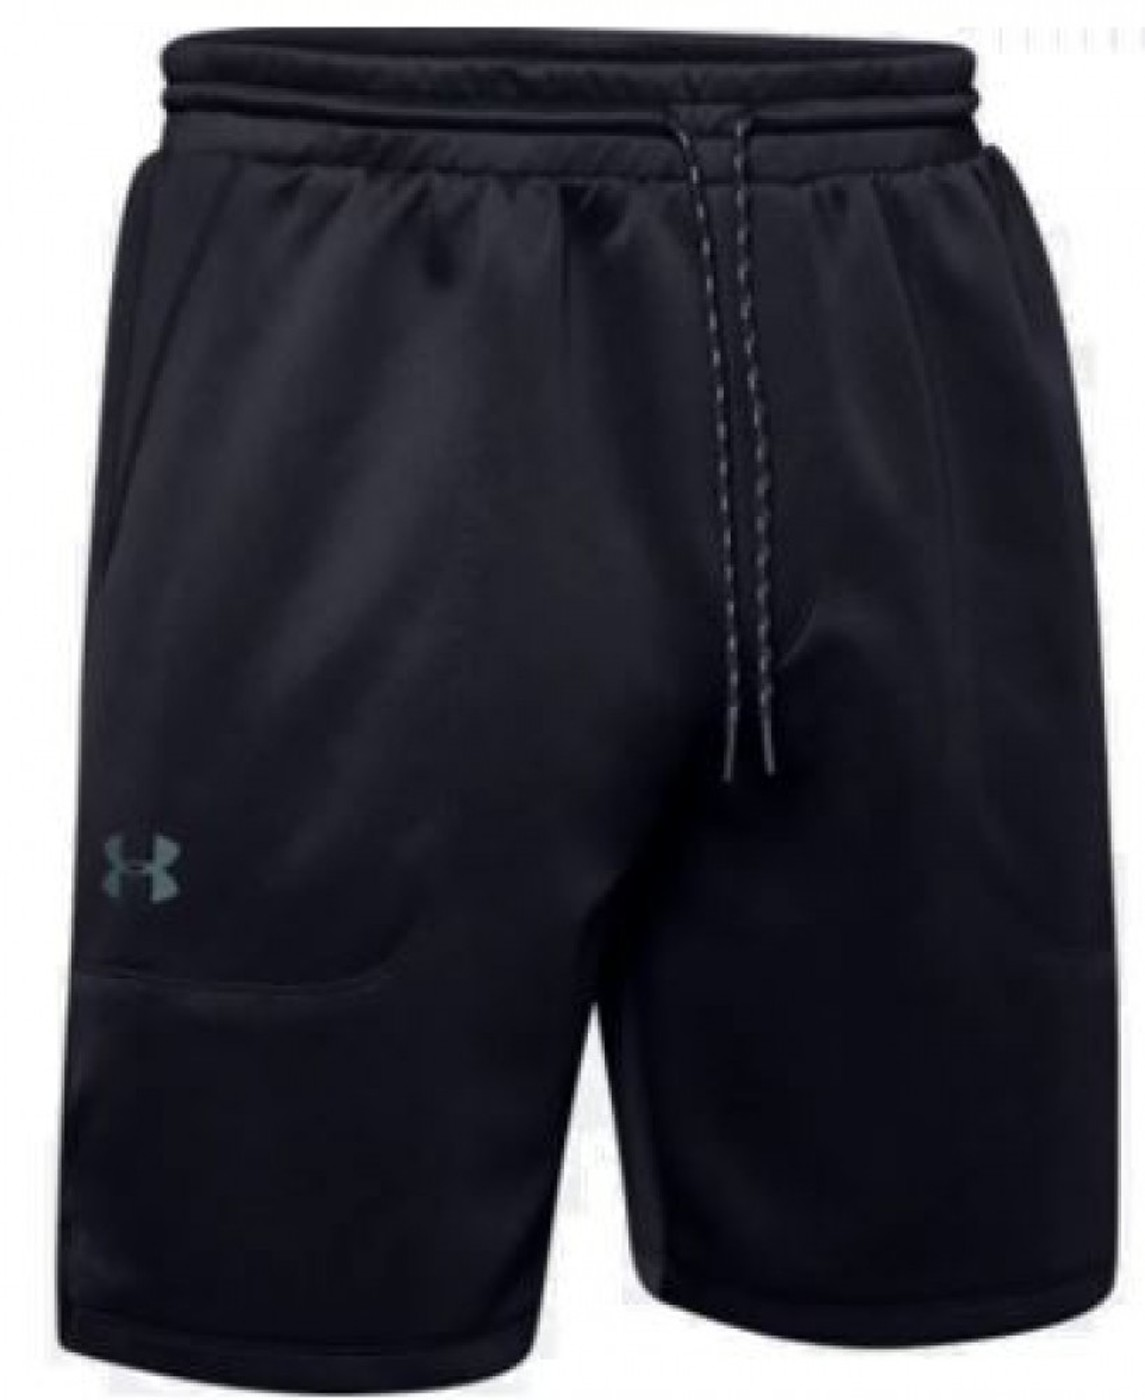 UNDER ARMOUR MK1 Warmup Short - Herren